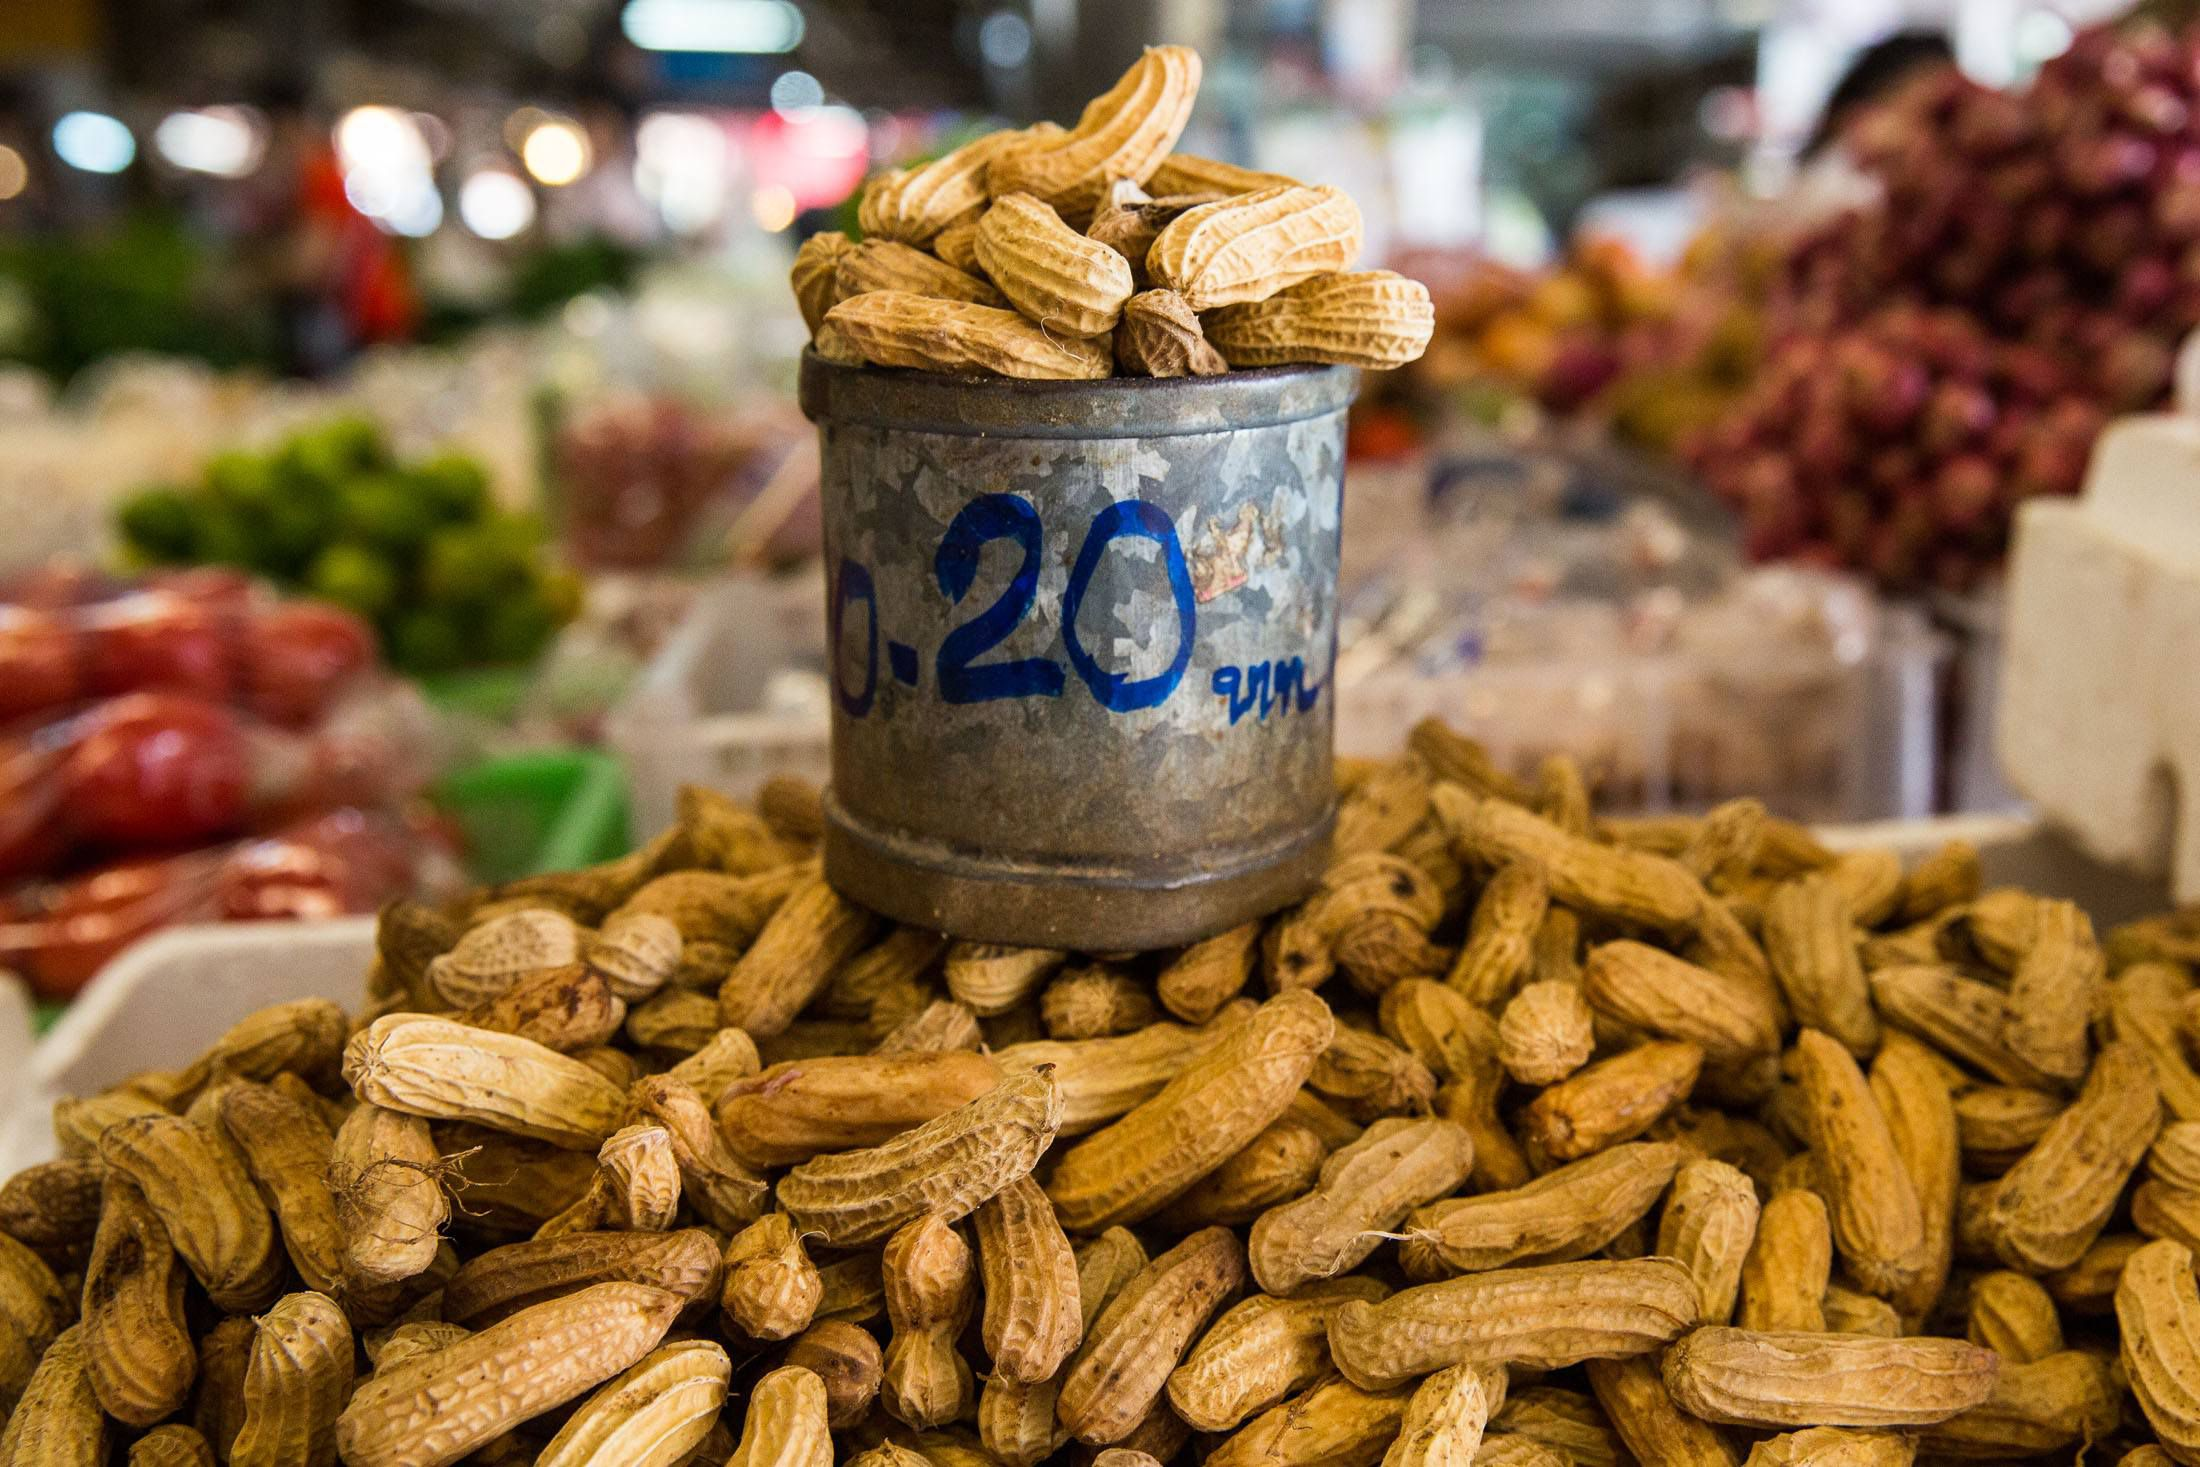 Travel with a Peanut Allergy